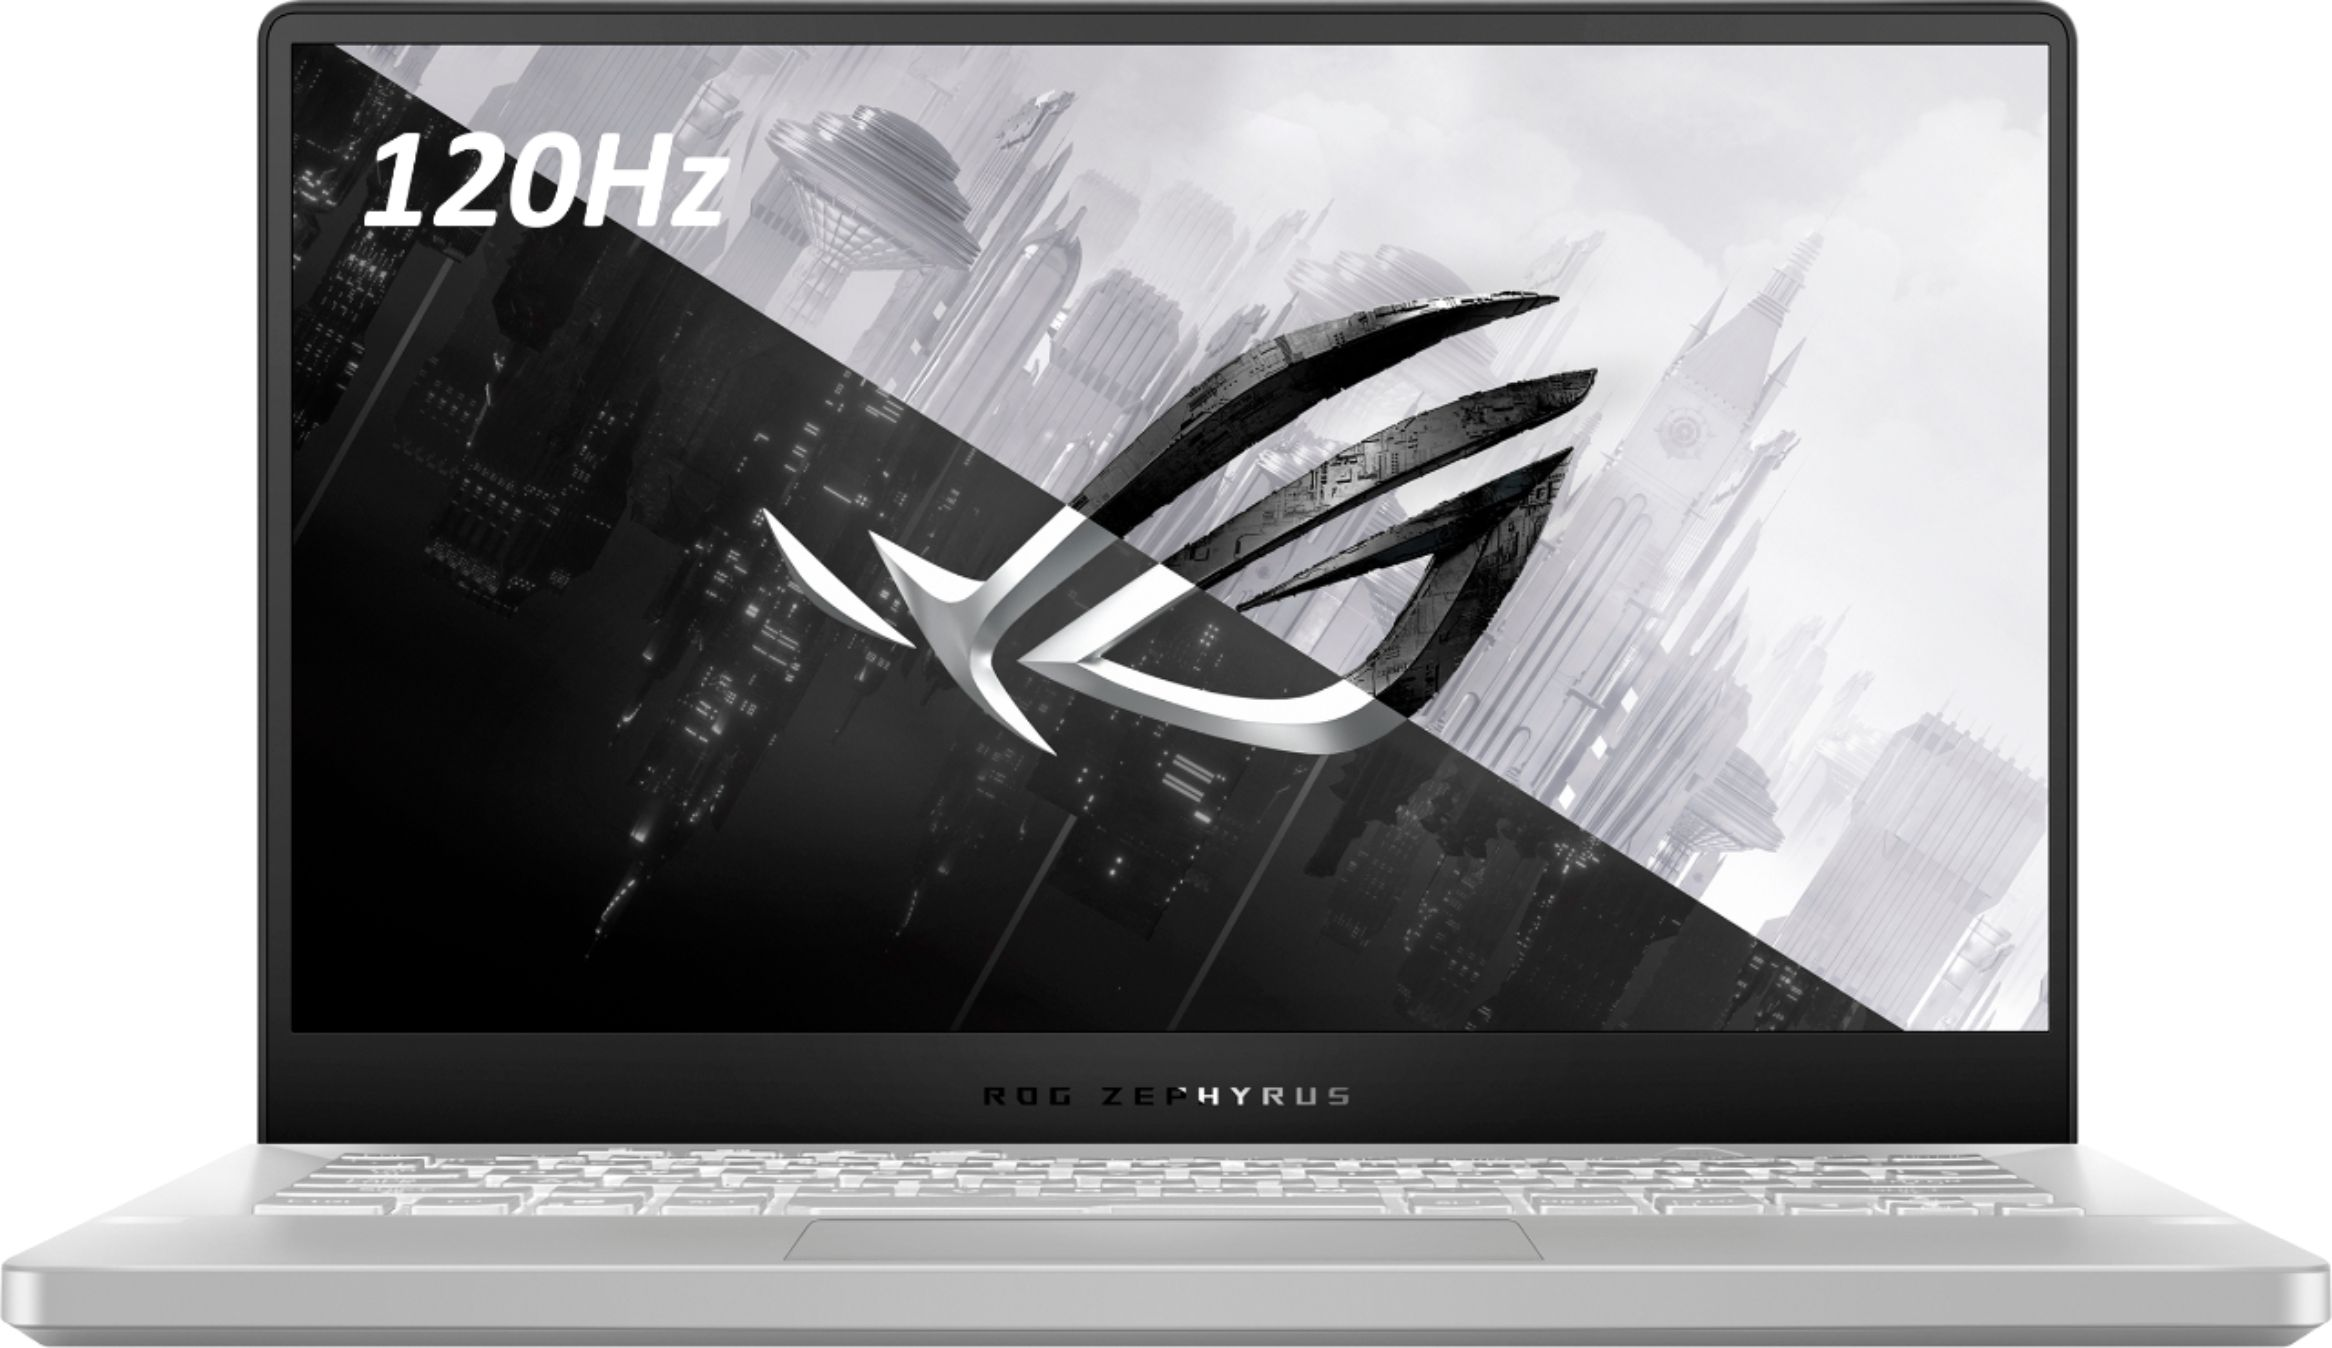 "Front Zoom. ASUS - ROG Zephyrus G14 14"" Gaming Laptop - AMD Ryzen 9 - 16GB Memory - NVIDIA GeForce RTX 2060 Max-Q - 1TB SSD - Moonlight White."